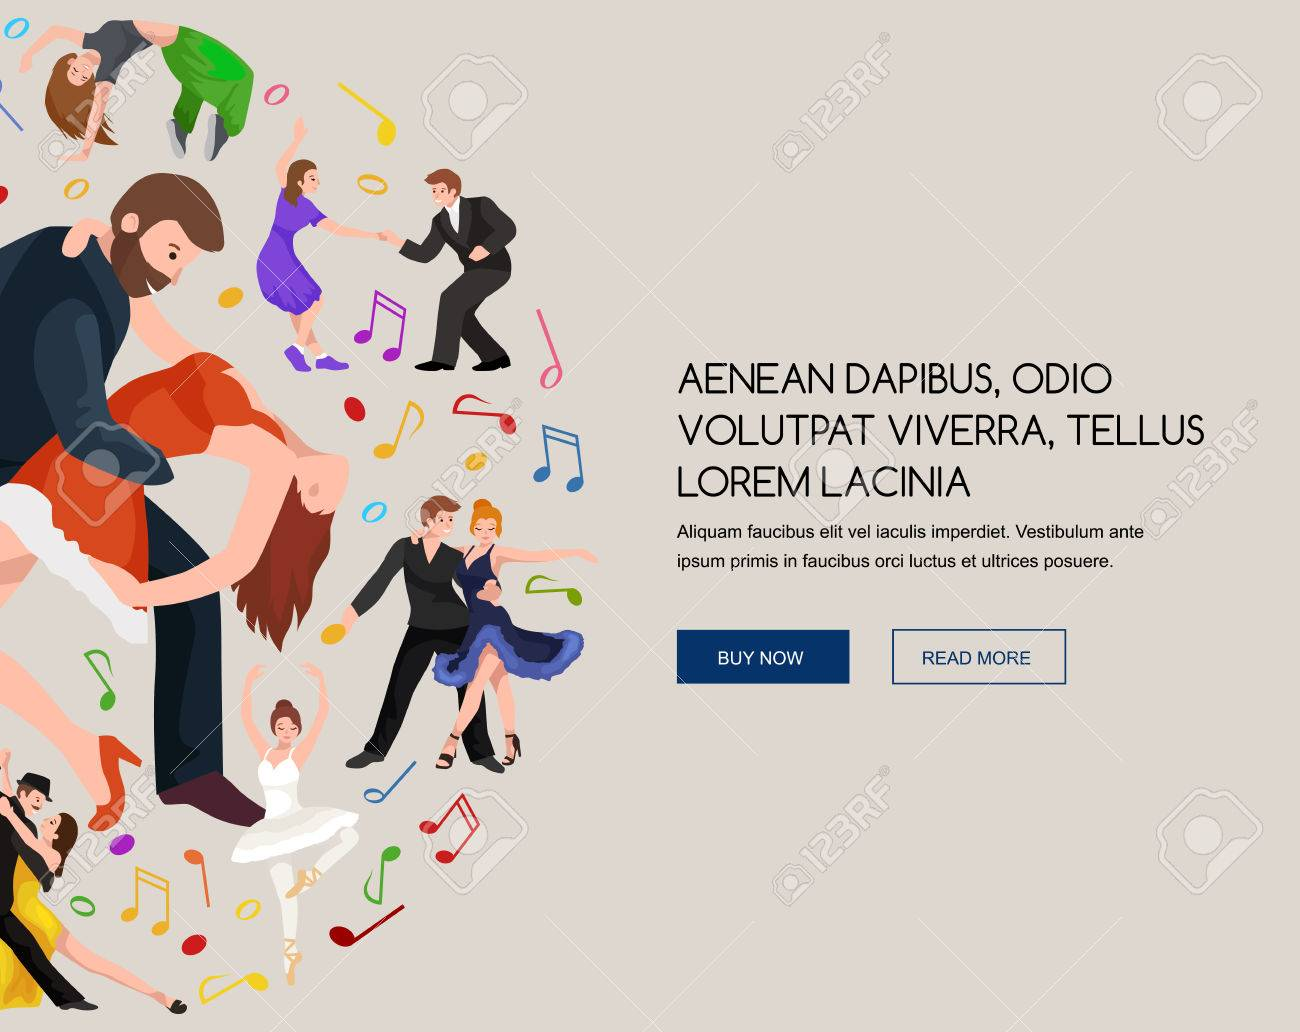 Couple dancing Kizomba in bright costumes. Vector illustration of partners dance bachata, happy peoples man and woman ballroom dancing poster, Bachata, roomba salsa dancer concept for poster, banner or flyer - 58647673